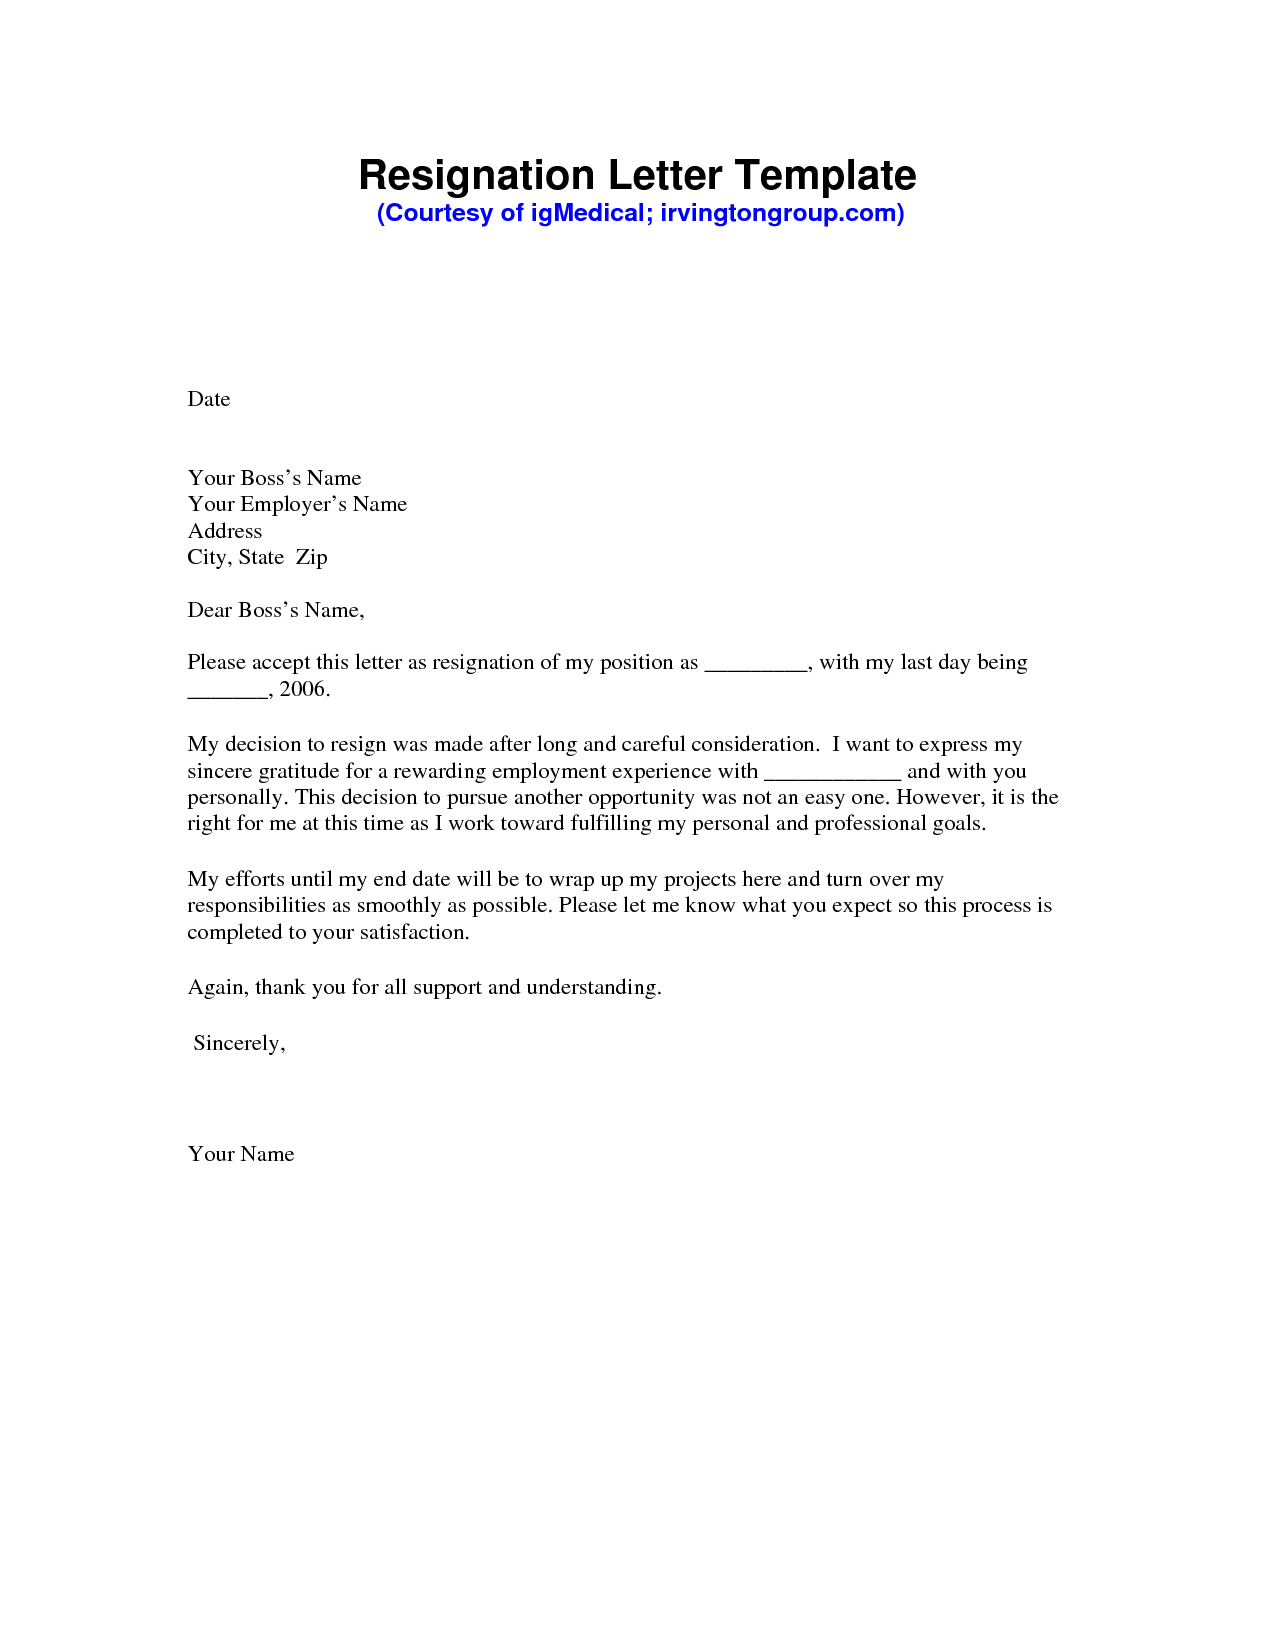 Attractive Resignation Letter Sample PDF  Resignation Letter Templates